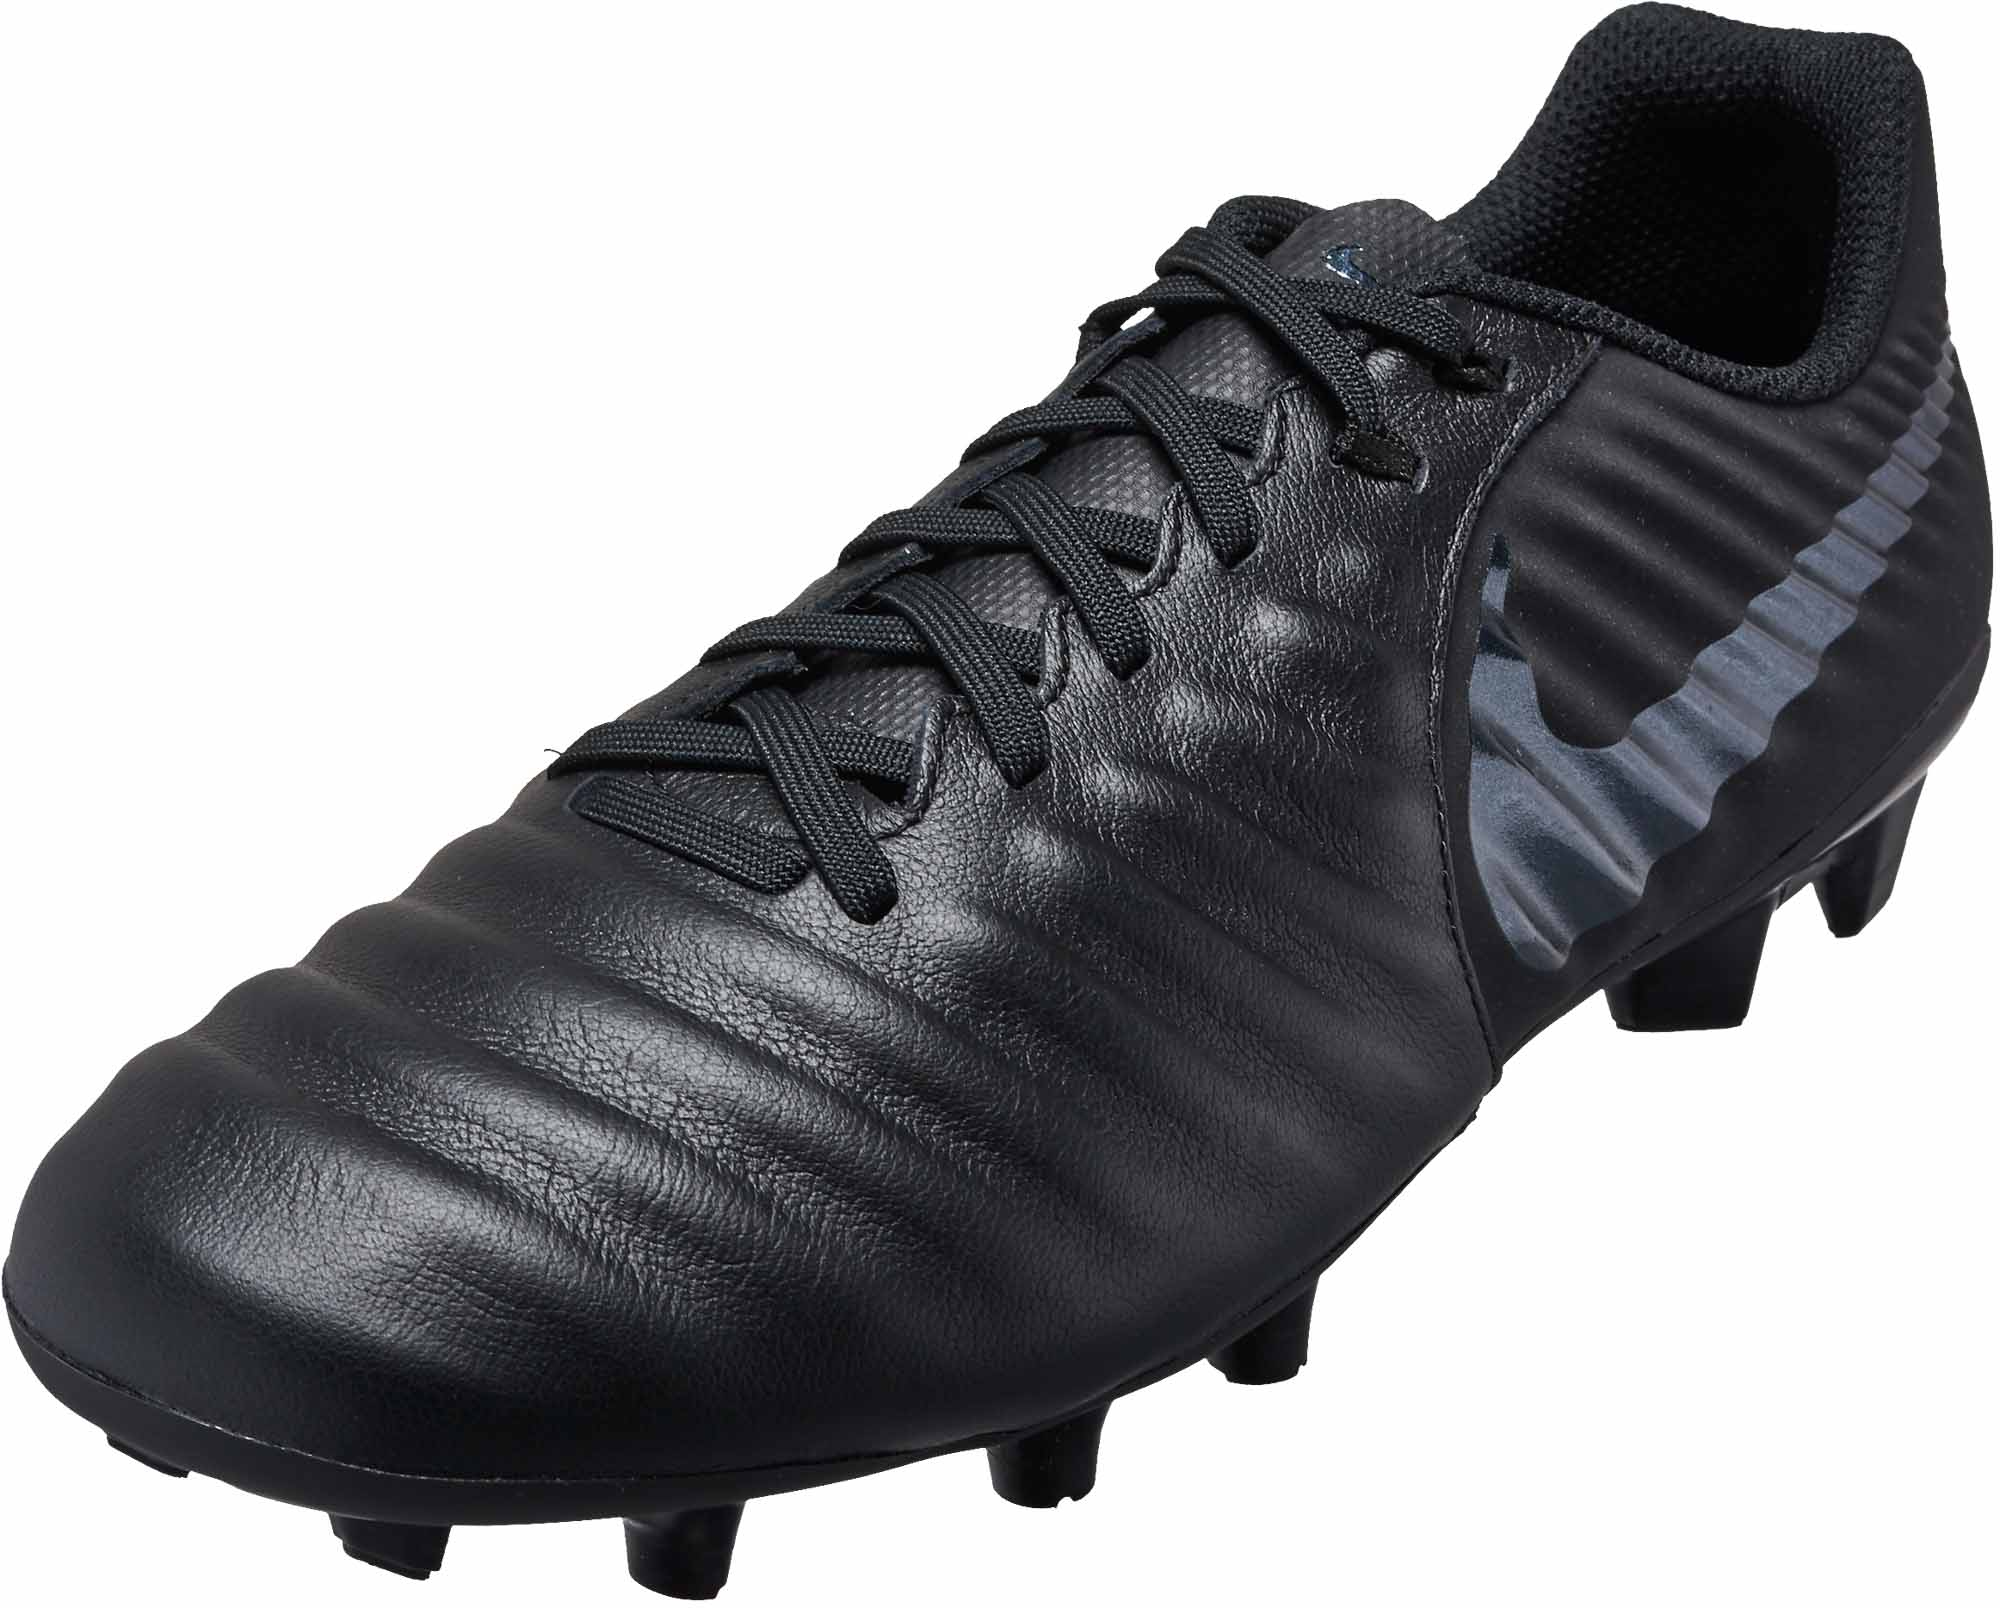 premium selection 005c1 6c775 Nike Tiempo Legend 7 Academy MG – Black Black